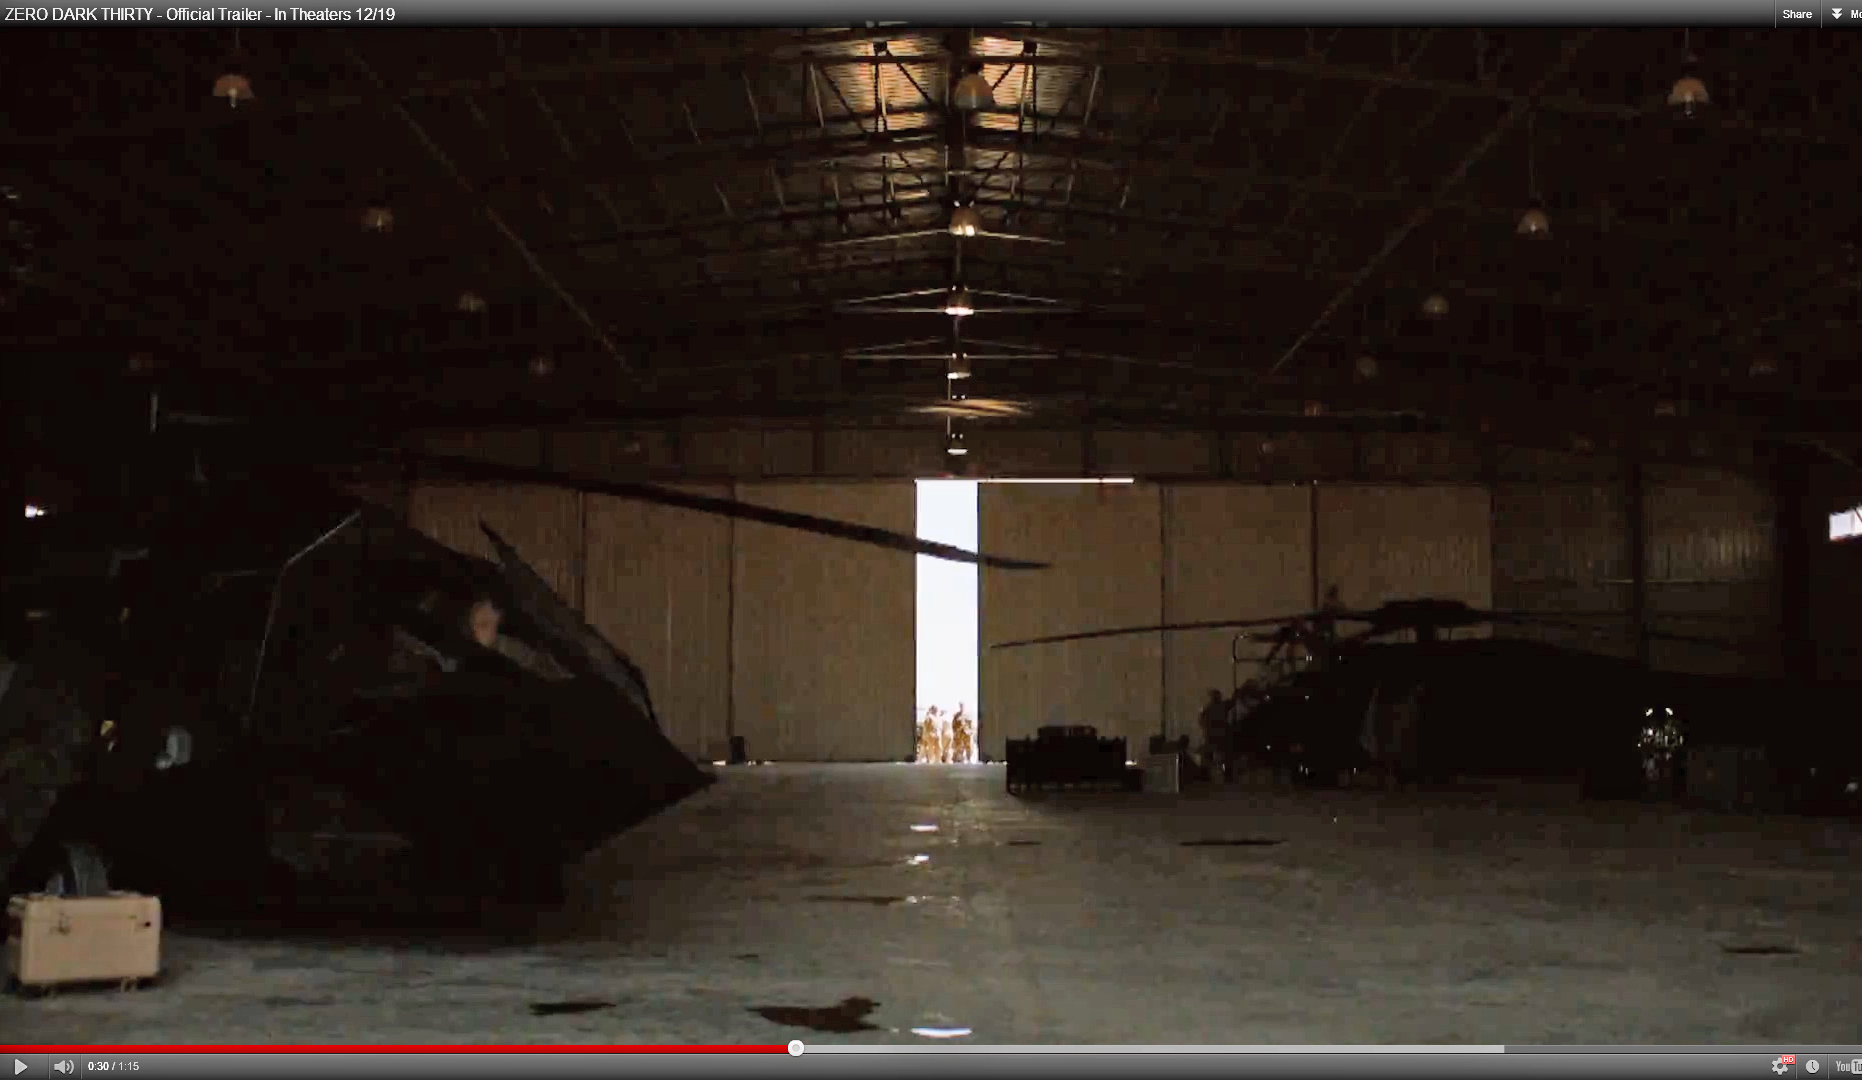 stealth helicopter or movie prop aviationintelcom